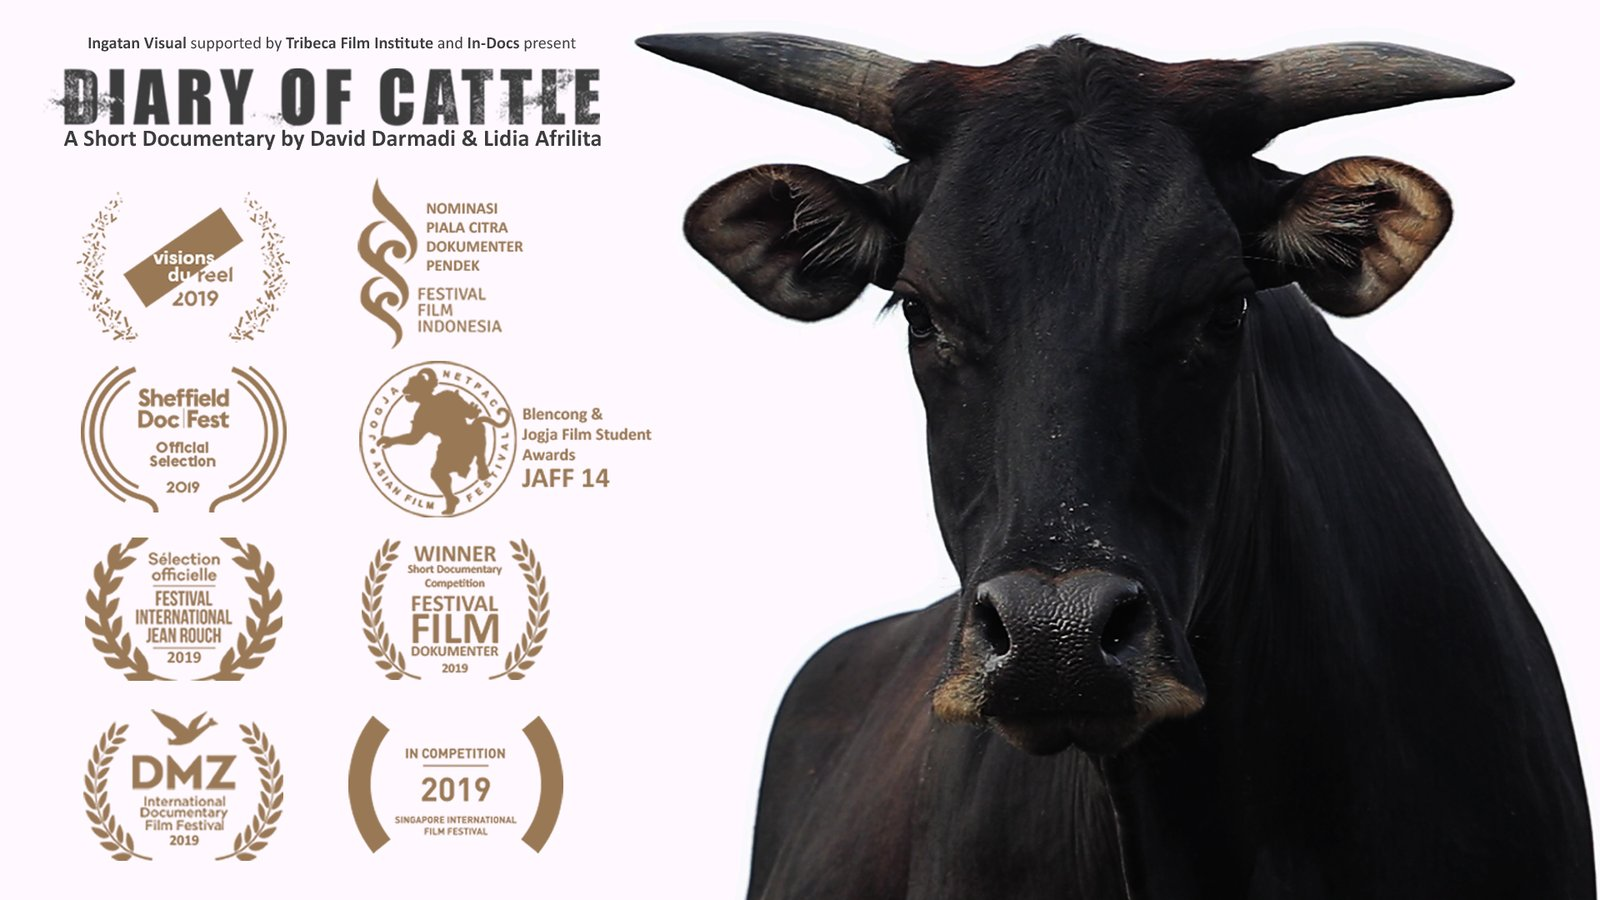 Diary of Cattle